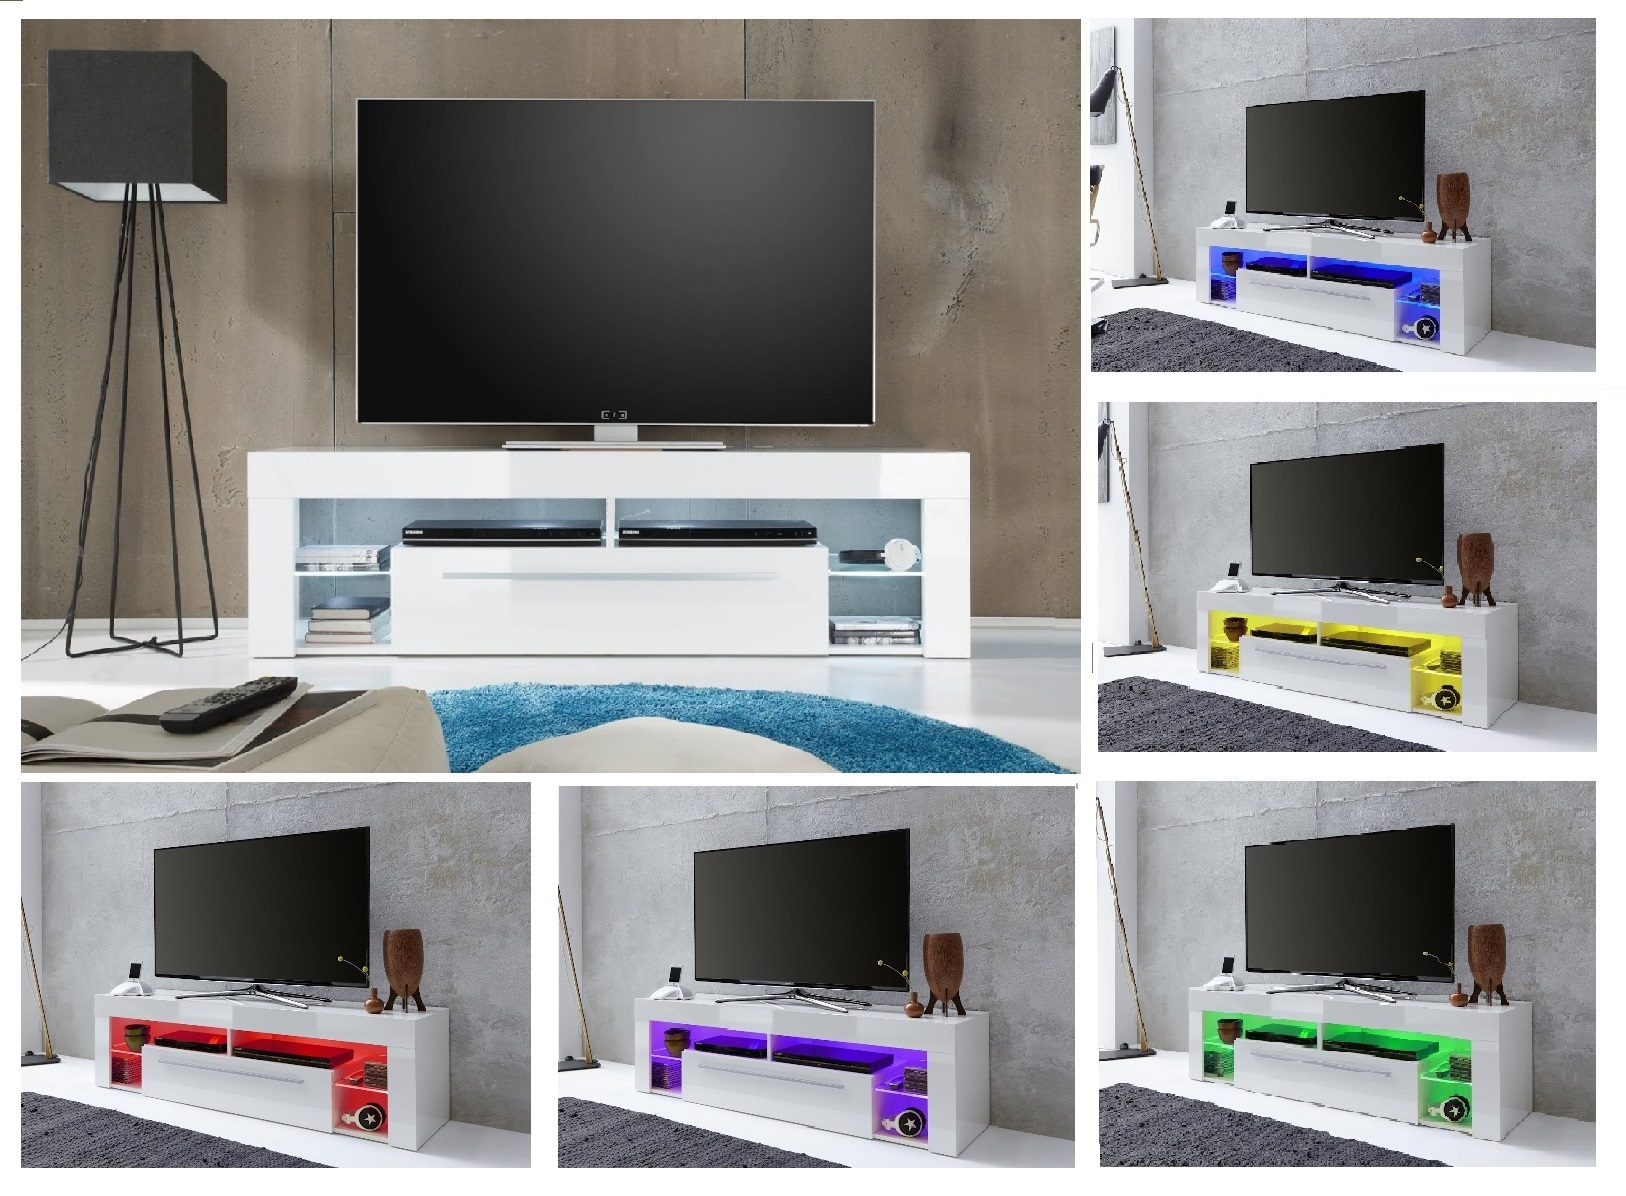 lowboard wei hochglanz tv hifi fernseh rack unterteil led rgb beleuchtung score ebay. Black Bedroom Furniture Sets. Home Design Ideas